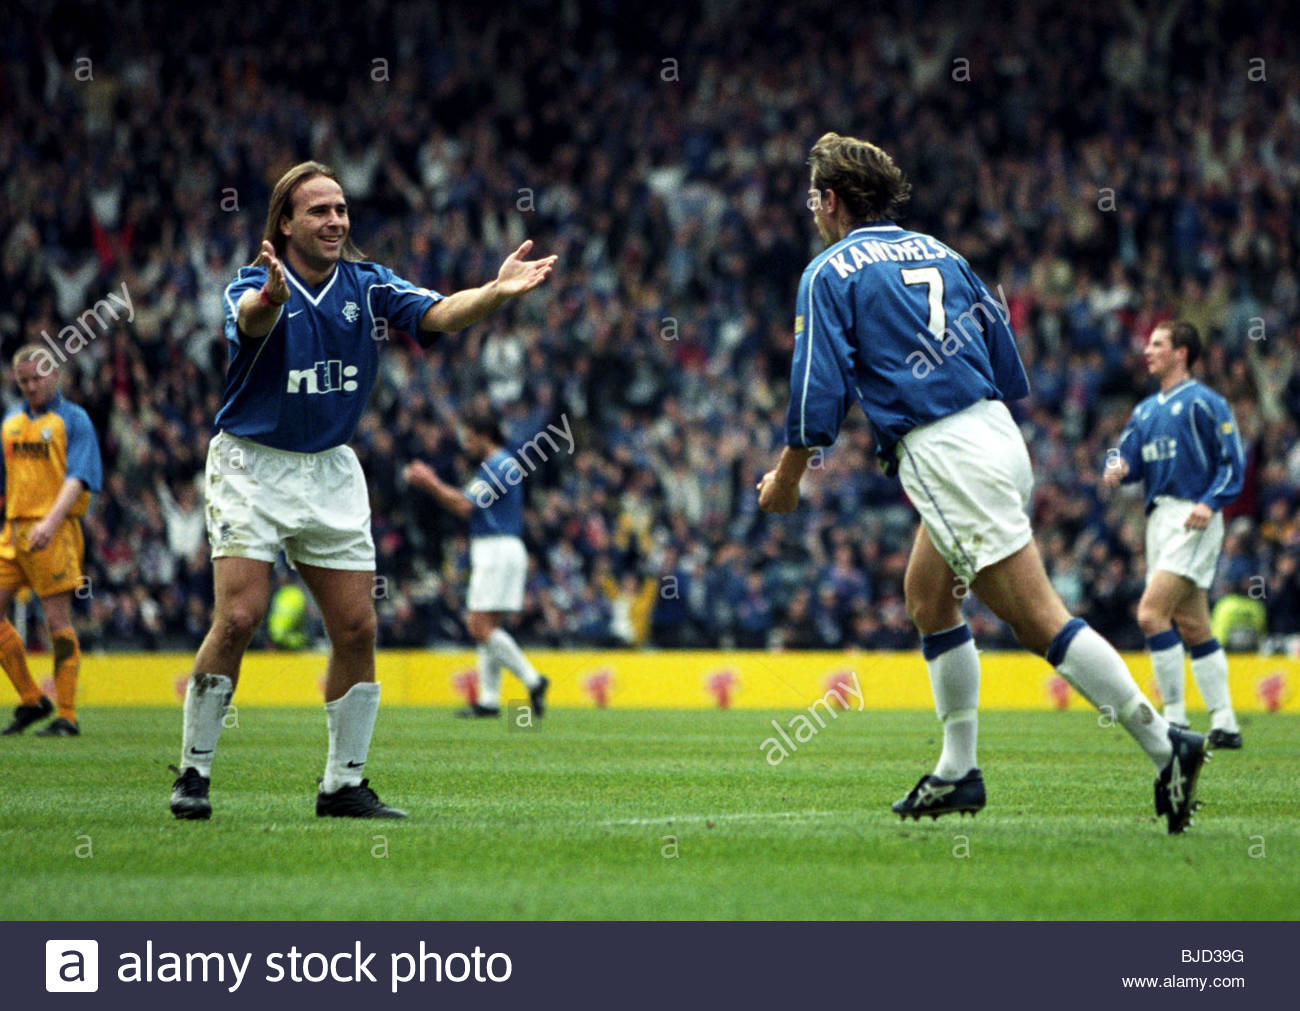 08/04/00 TENNENT'S SCOTTISH CUP SEMI-FINAL AYR UTD v RANGERS (0-7) HAMPDEN - GLASGOW Andre Kanchelskis celebrates - Stock Image